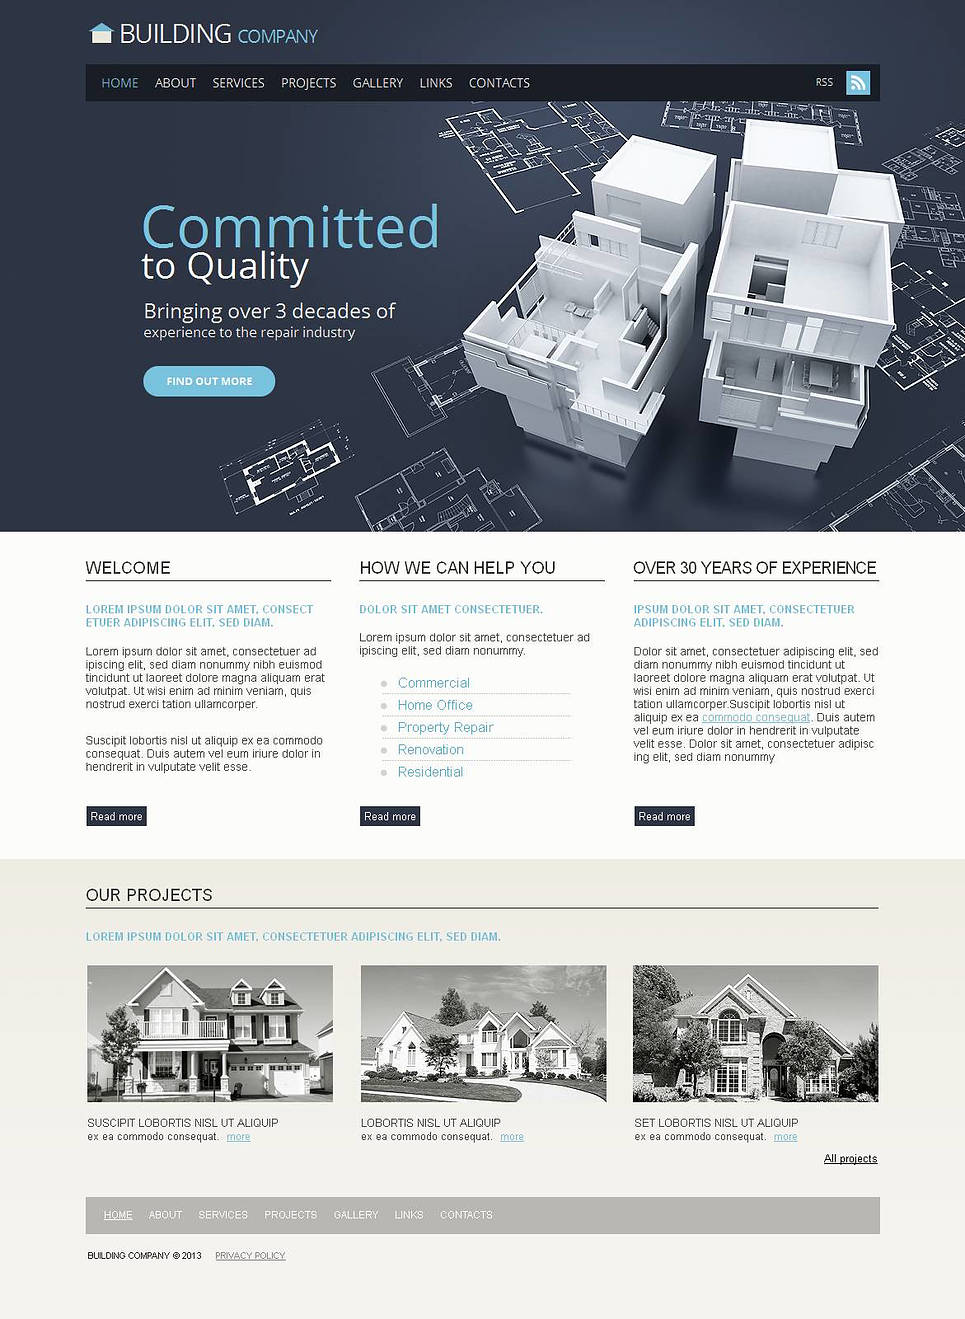 Building Company Website Template with Grid Image Gallery - image